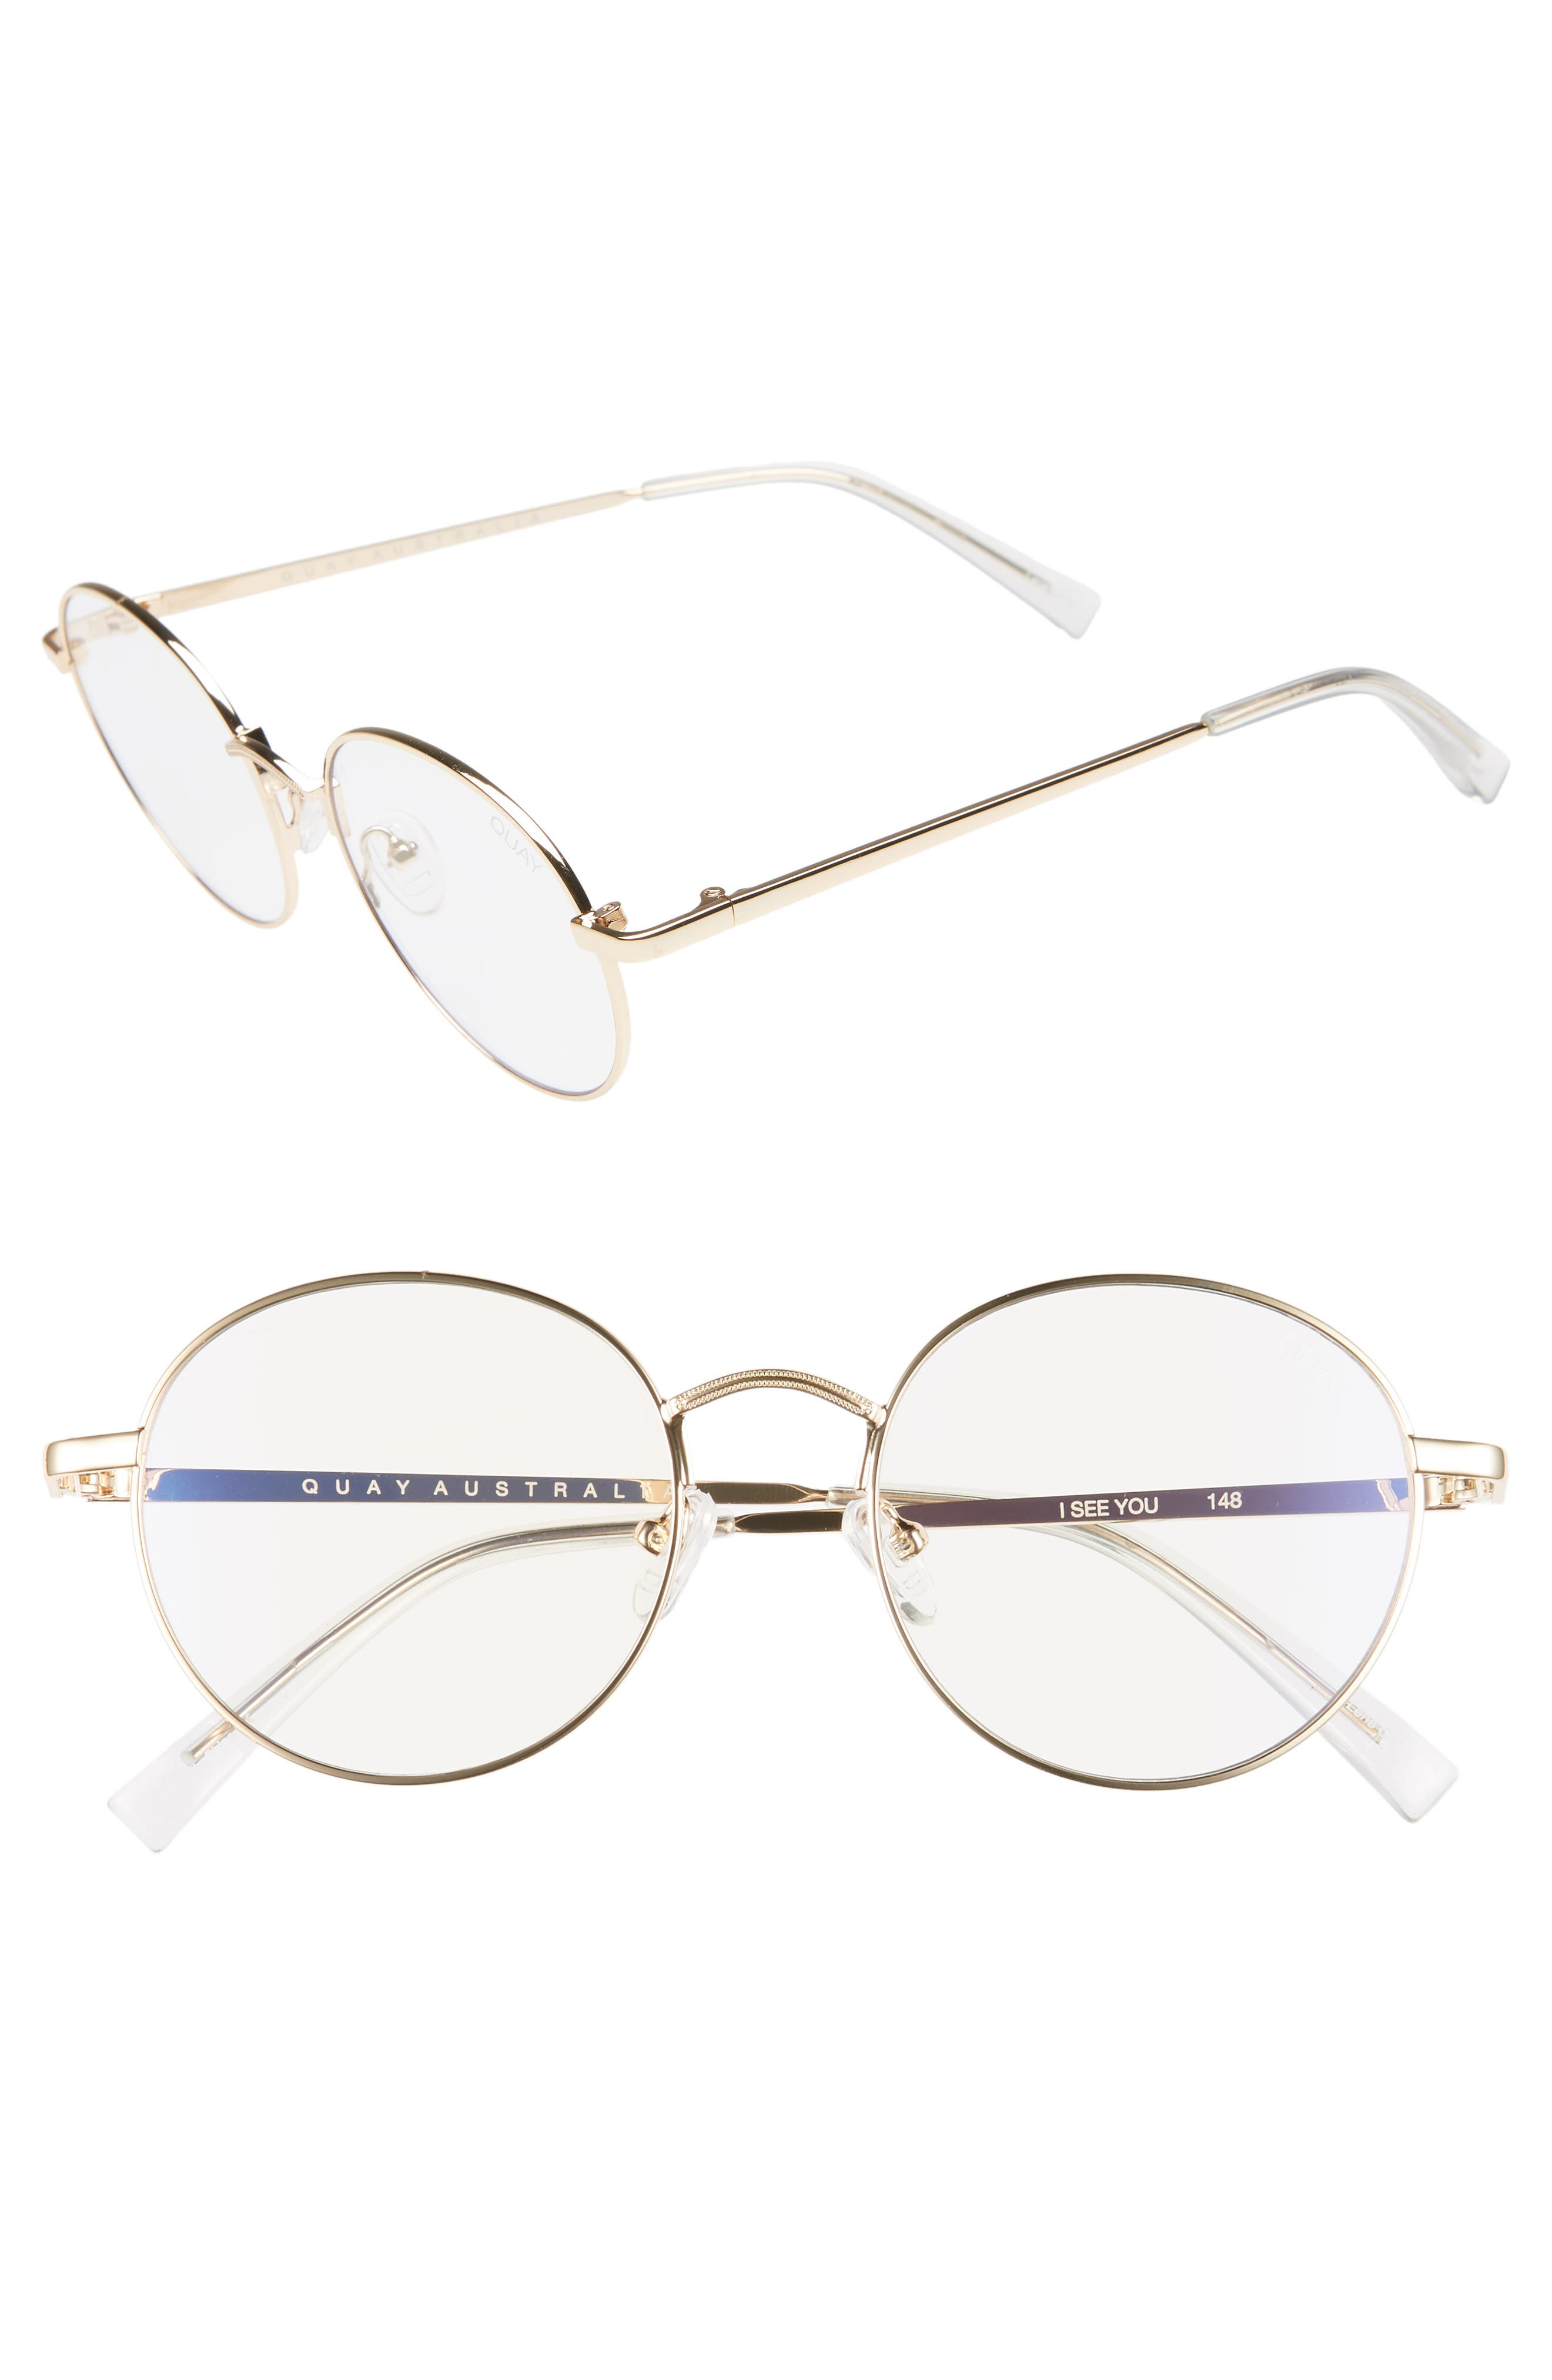 QUAY I SEE YOU 51MM ROUND FASHION GLASSES - GOLD/ CLEAR